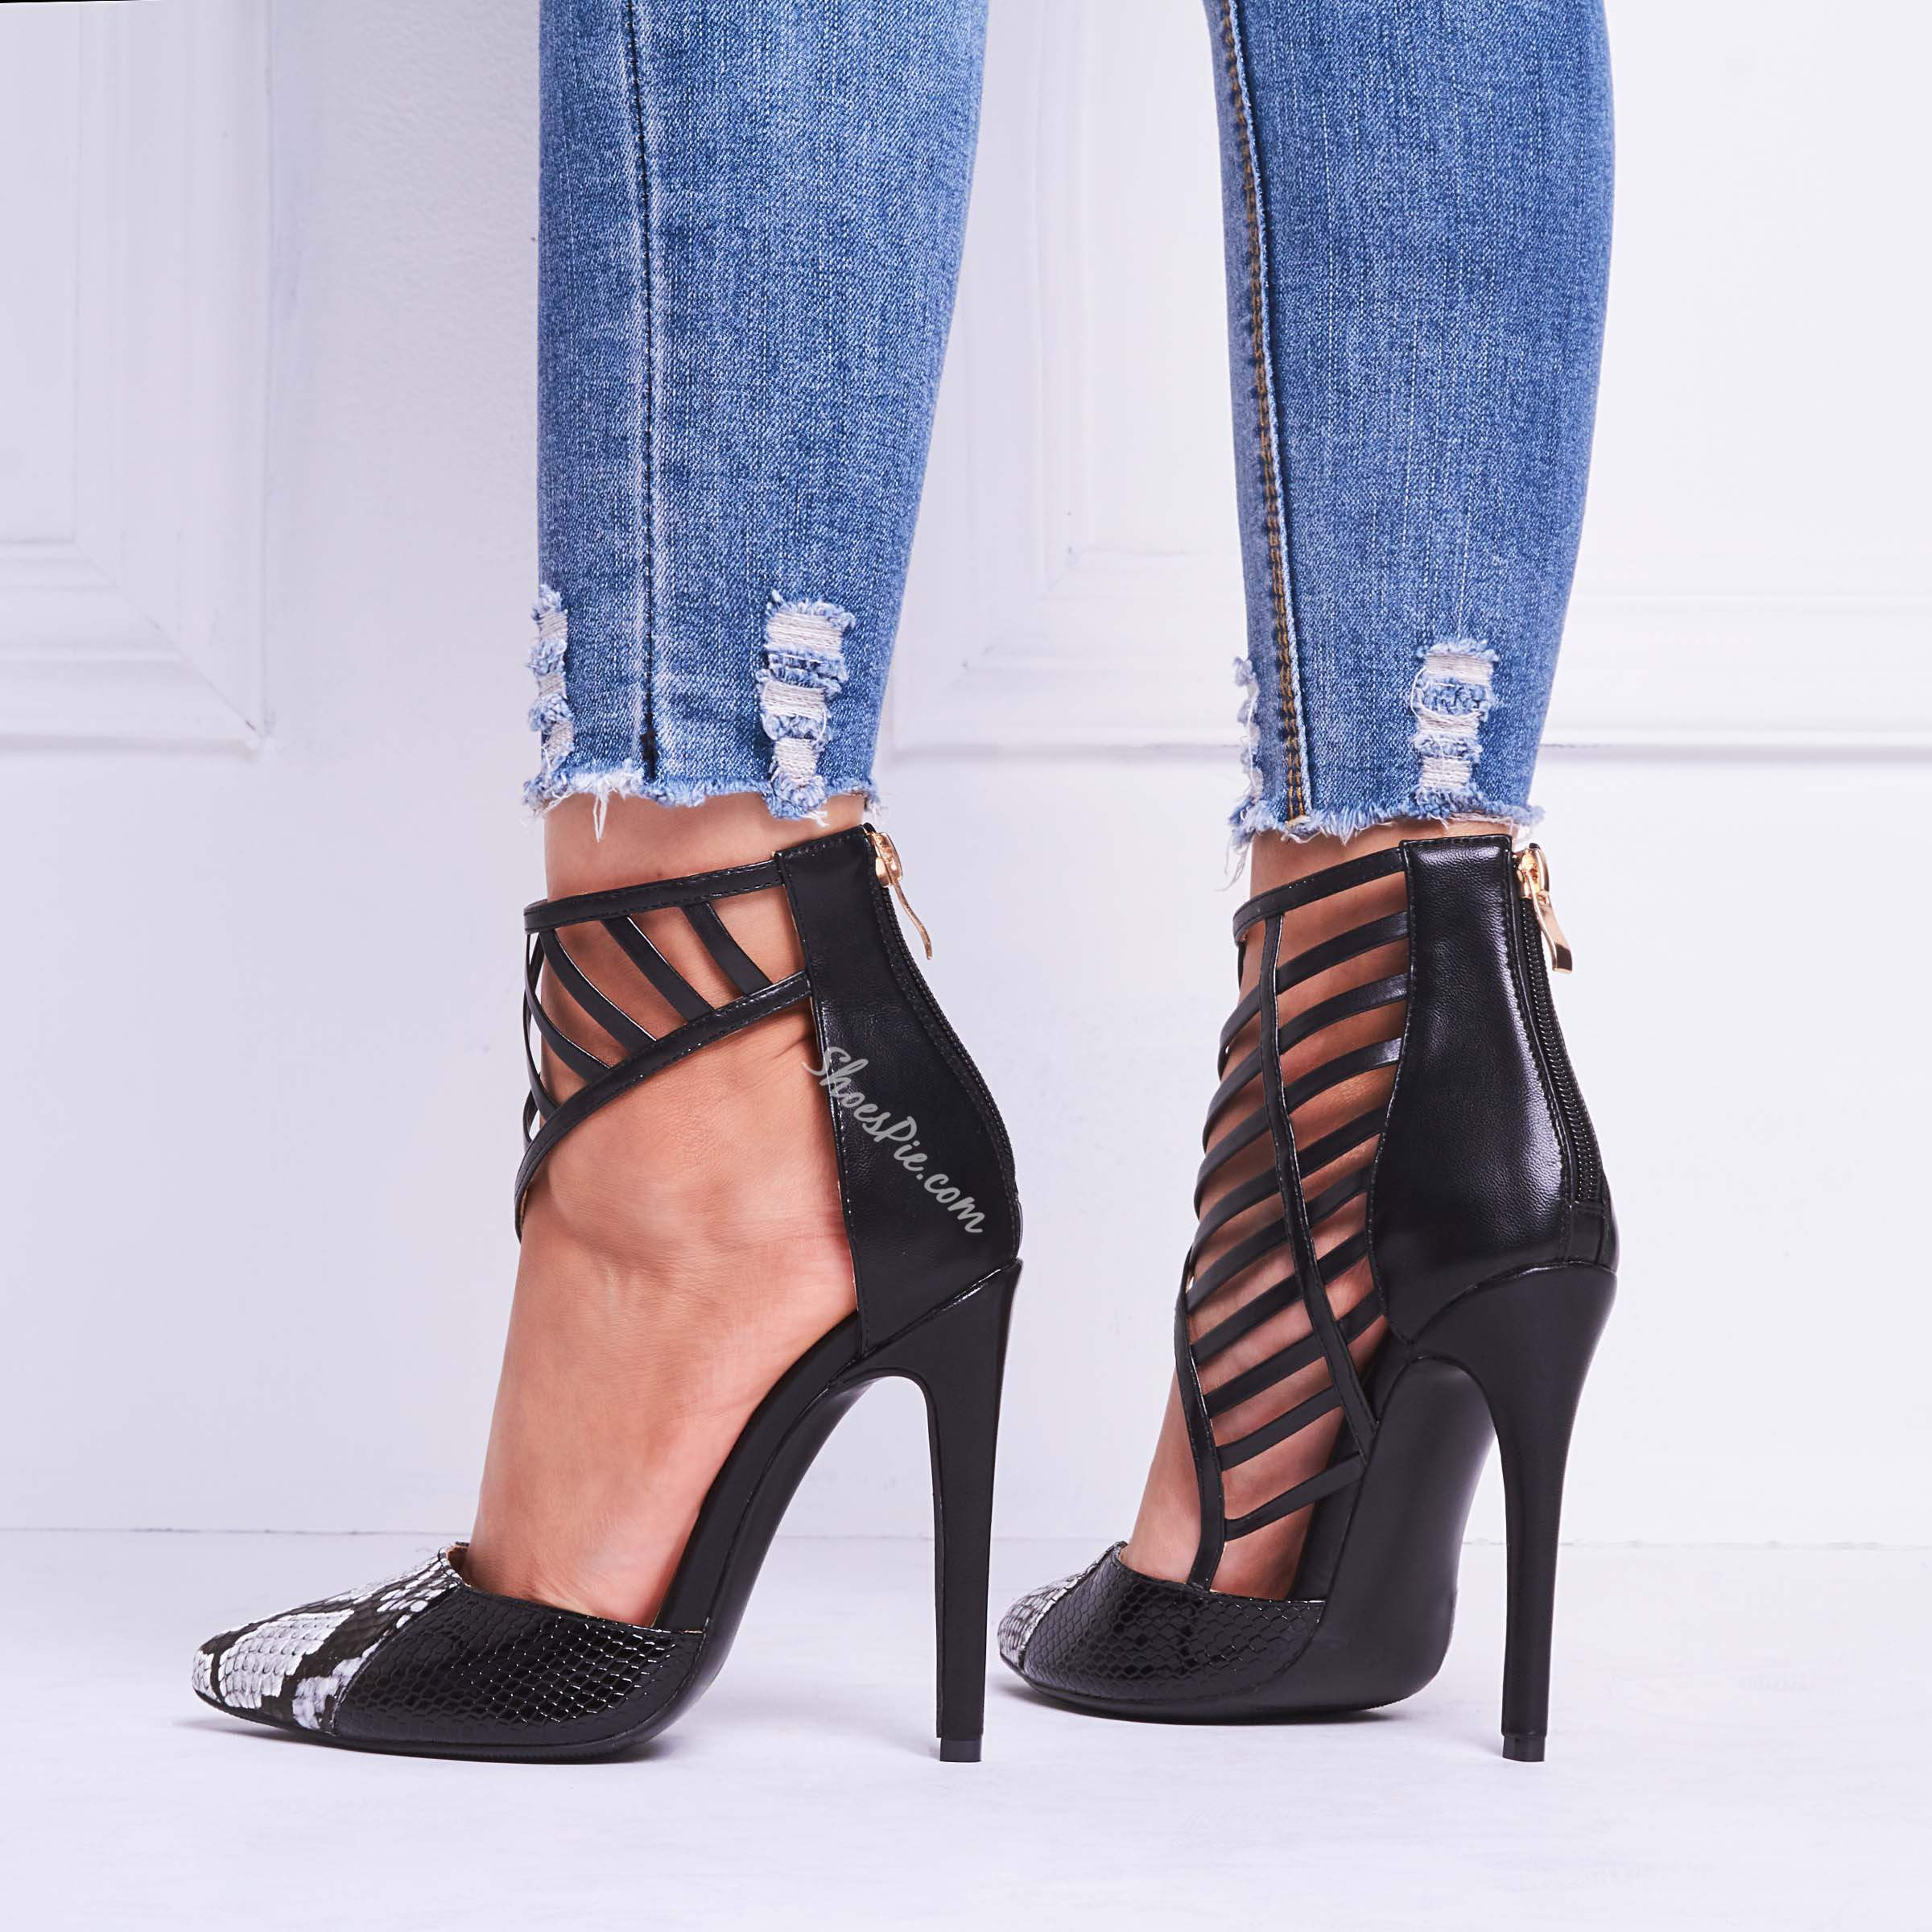 Shoespie Black Snakeskin Zipper Stiletto Heels